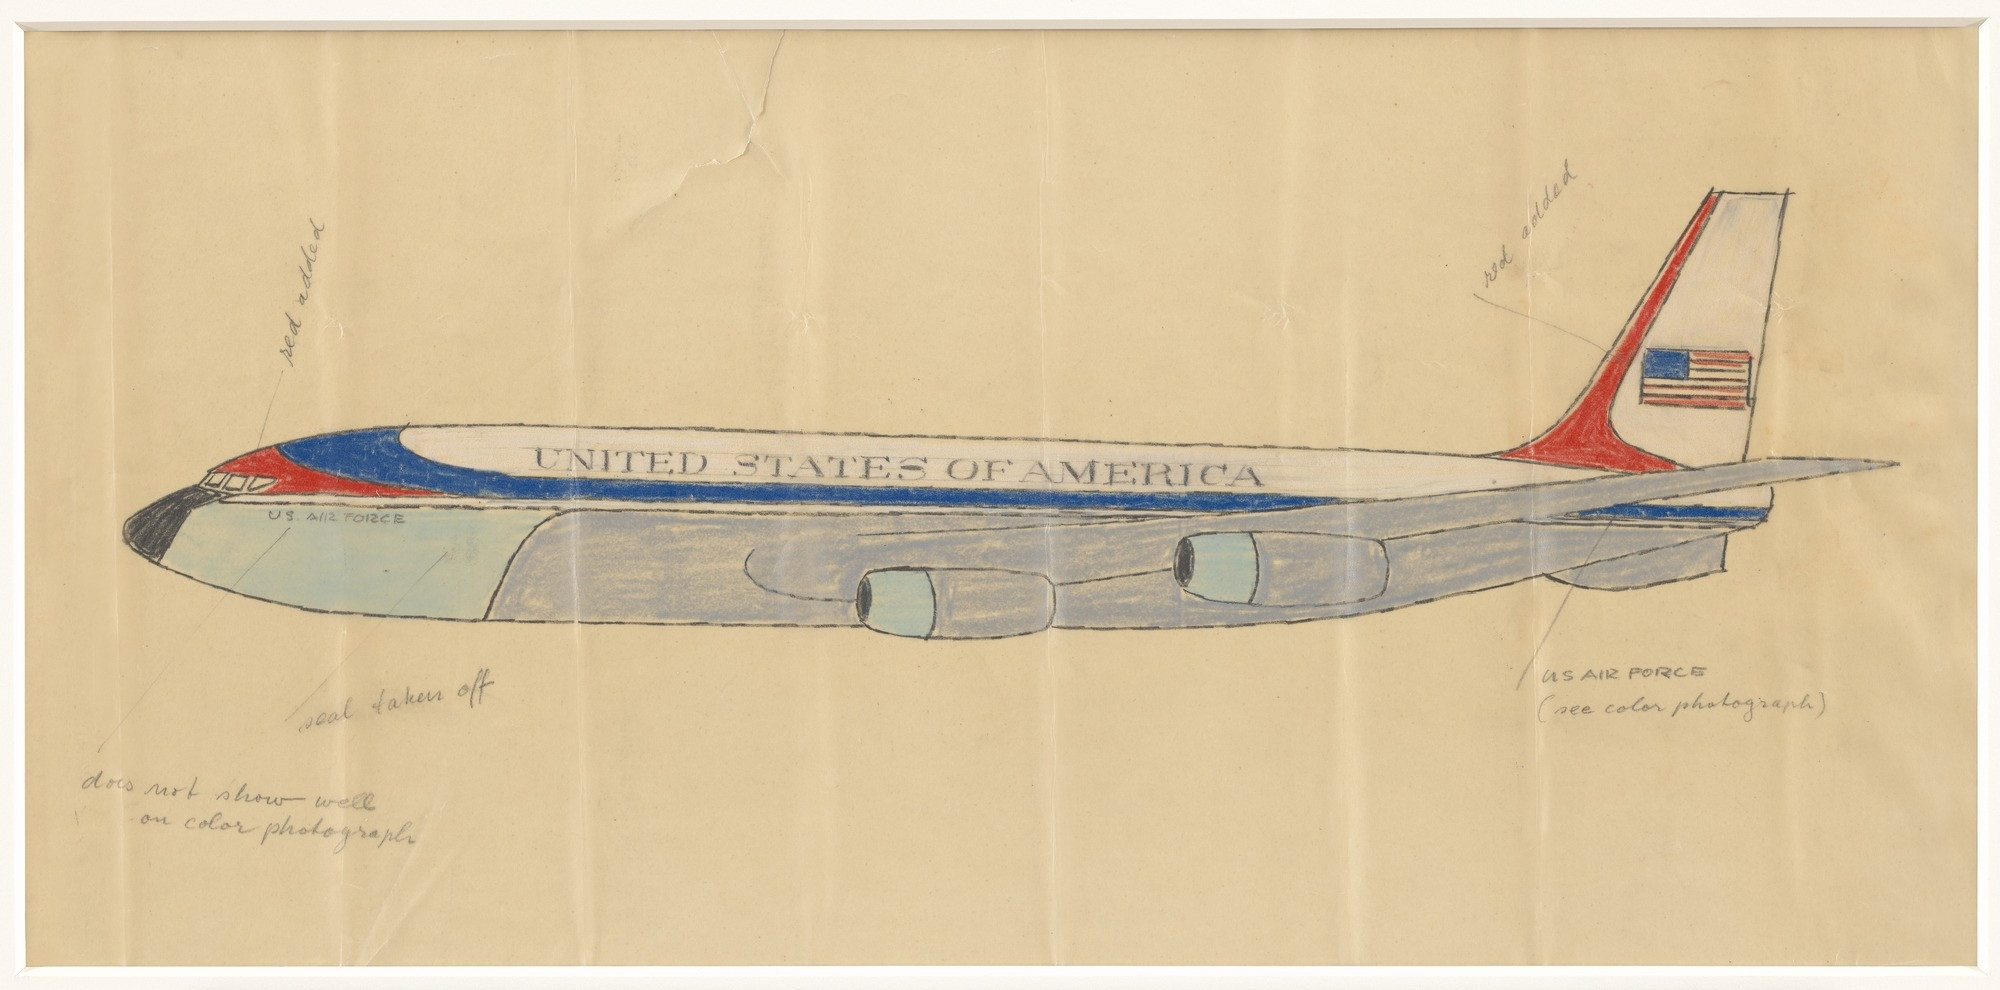 Raymond Loewy. Livery Design for Air Force One. 1962. Gouache, colored pencil, graphite on paper, 10 1⁄2 × 22″ (26.7 × 55.9 cm). Gift of Jo Carole and Ronald S. Lauder